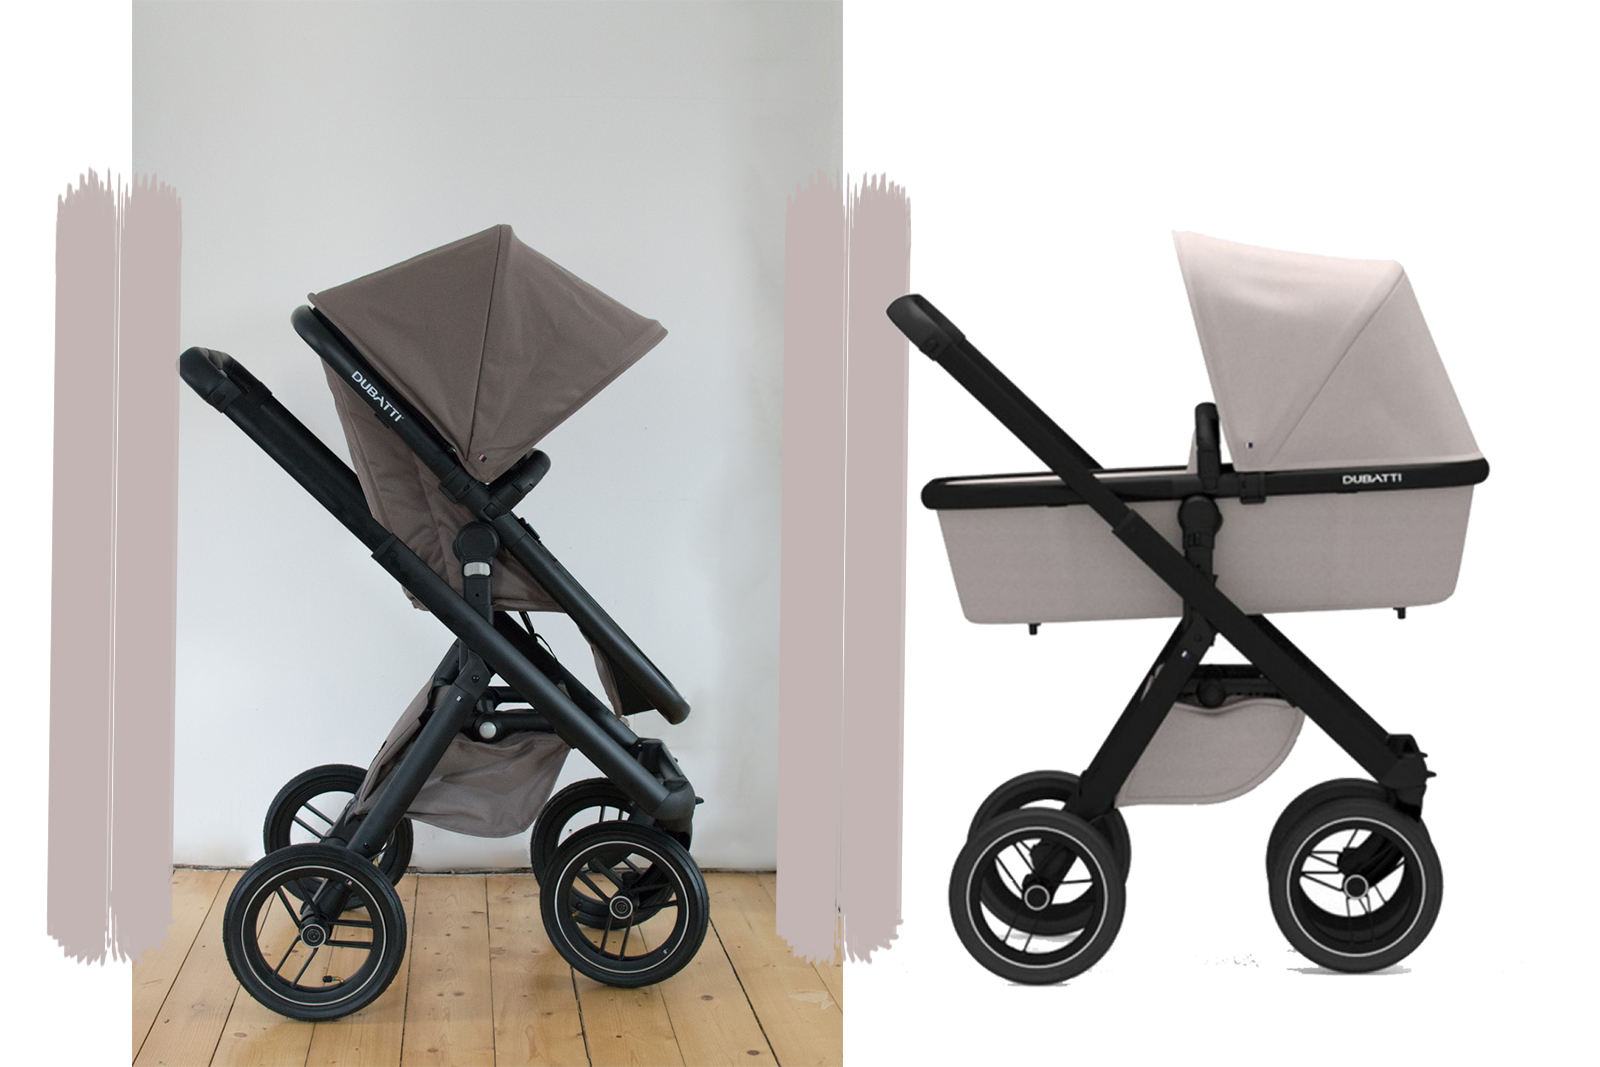 der dubatti one kombi kinderwagen im test. Black Bedroom Furniture Sets. Home Design Ideas